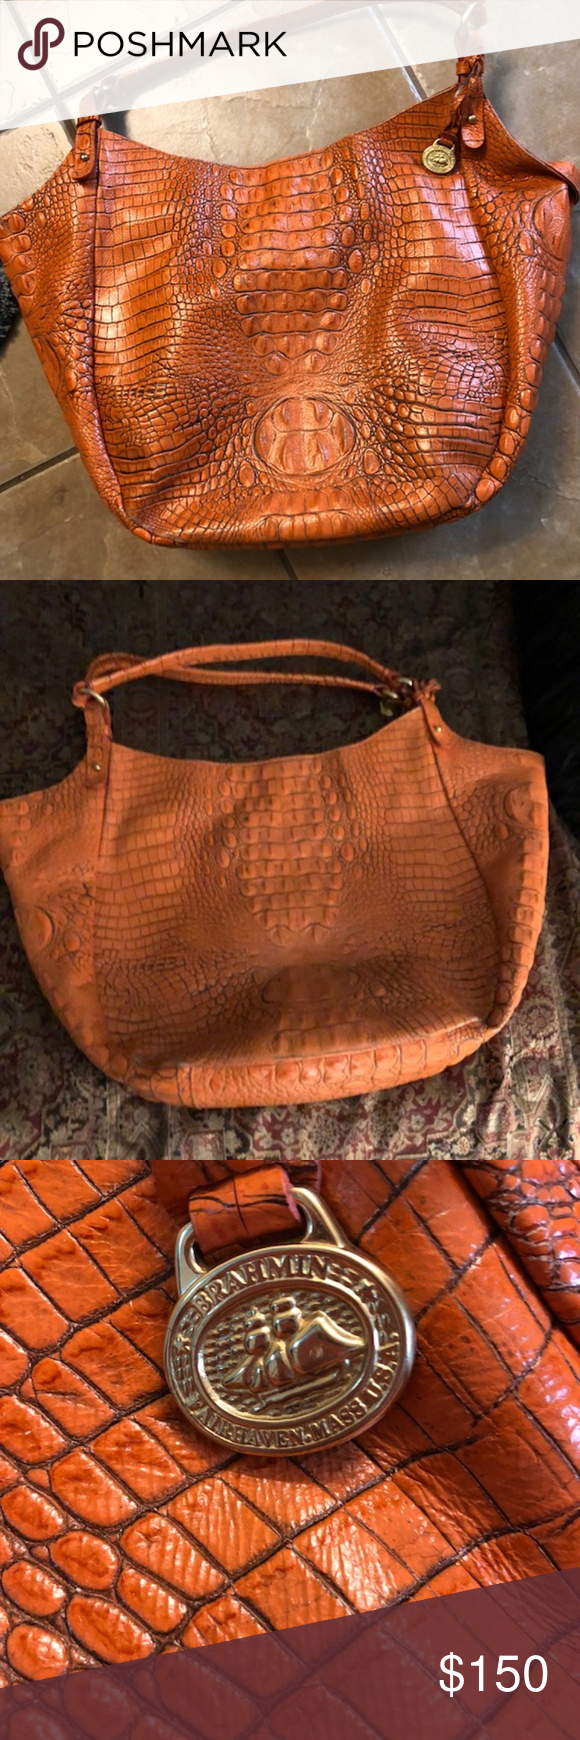 a67bbbd293c Brahmin Tote Melbourne collection by Brahmin Crocodile-embossed leather  Orange Smoke Free Home Good Condition Brahmin Bags Totes